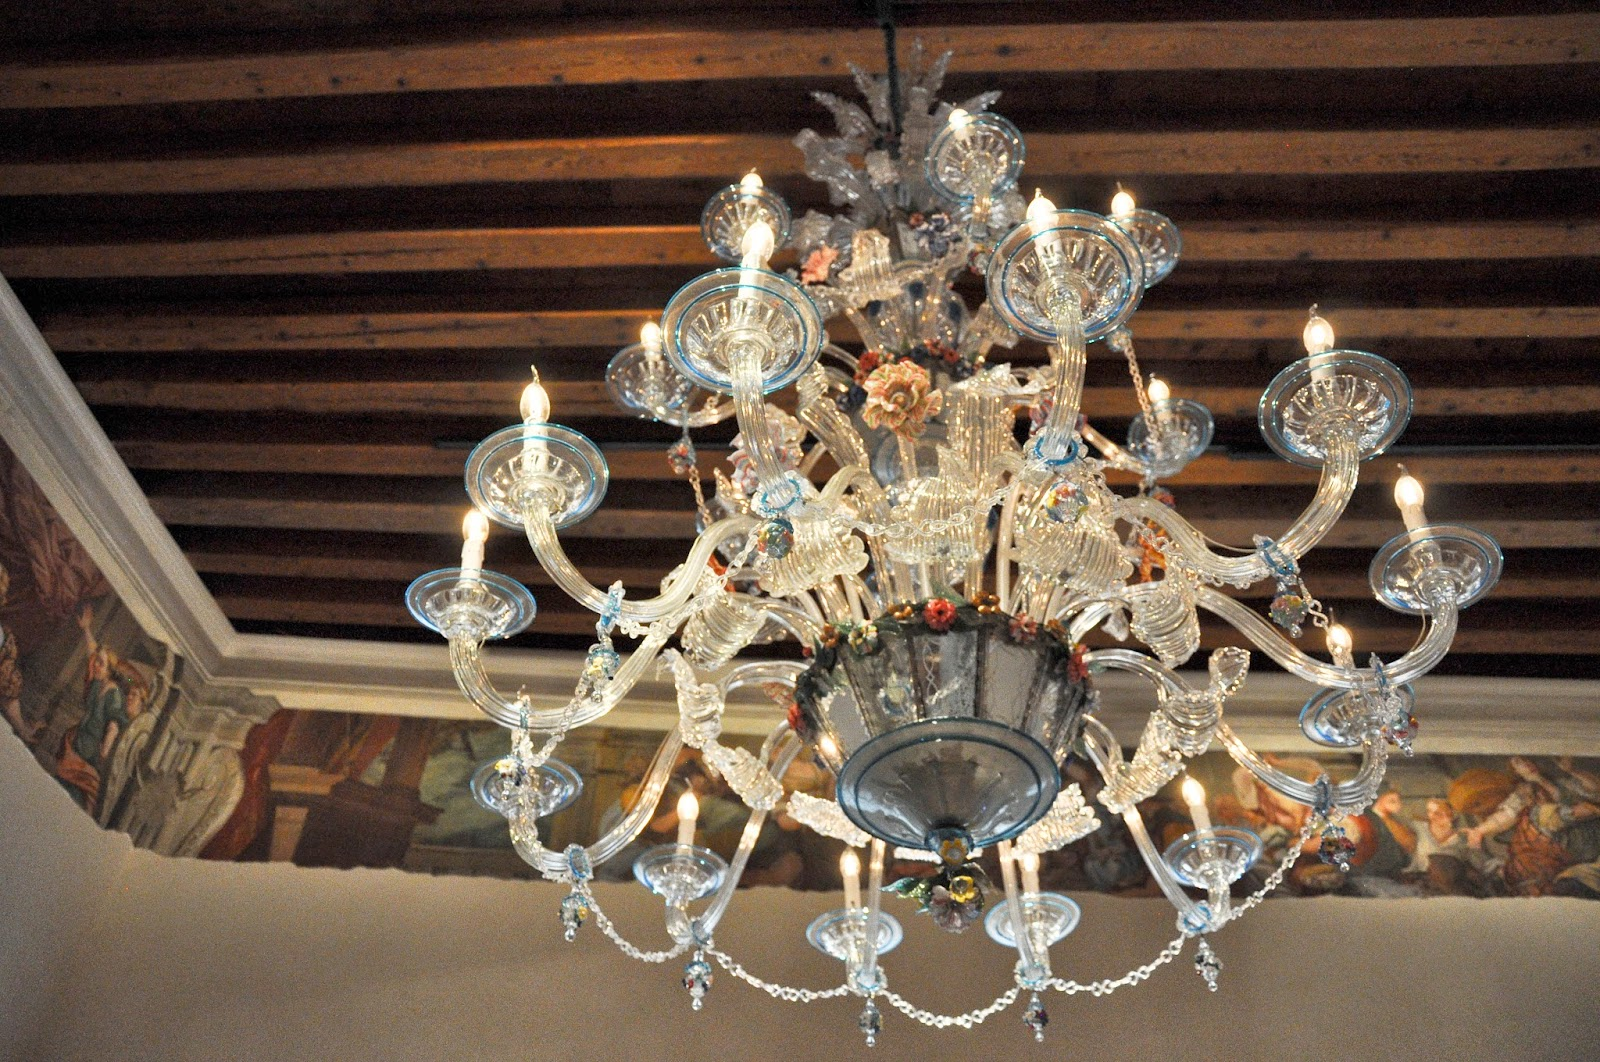 A Murano glass chandelier, the Ancient Greece section of Gallerie D'Italia in Palazzo Leoni Montanari, Vicenza, Italy